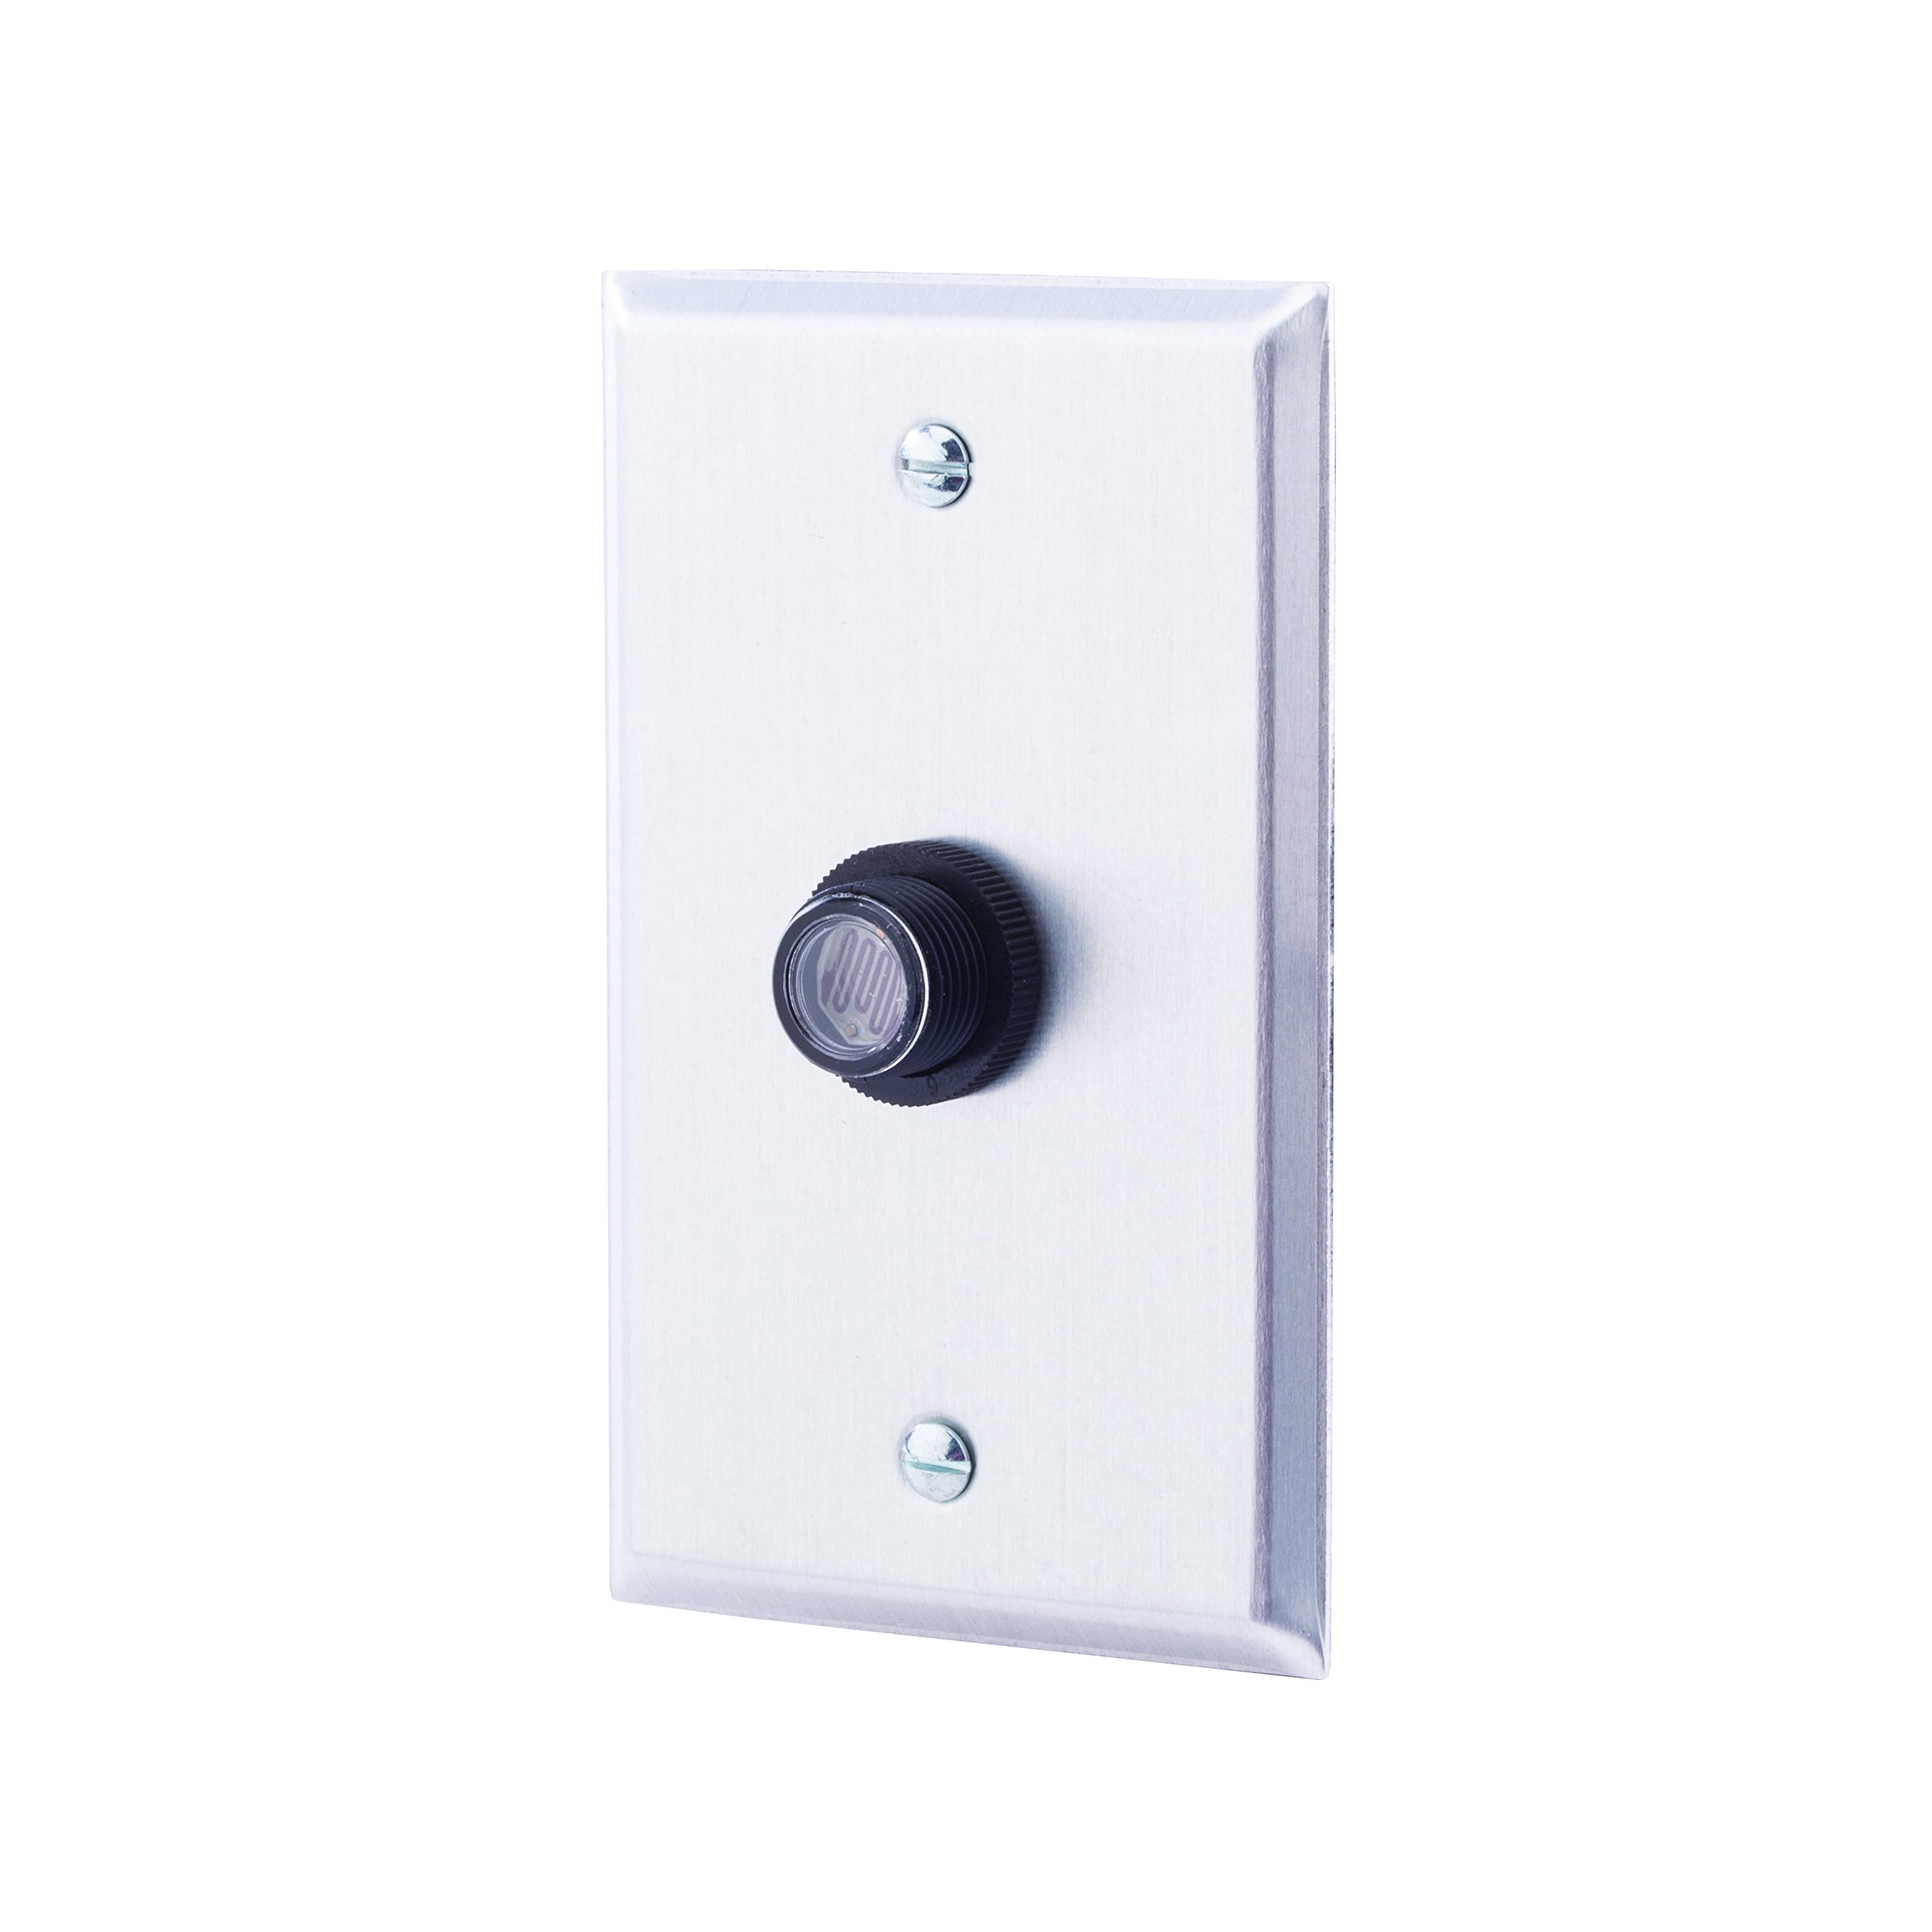 NSi Industries TORK RKP311 Outdoor 120-Volt Button Photocontrol With Wall Plate - Controls Lighting Dusk to Dawn - Compatible with Incandescent/Compact Fluorescent/Halogen/LED